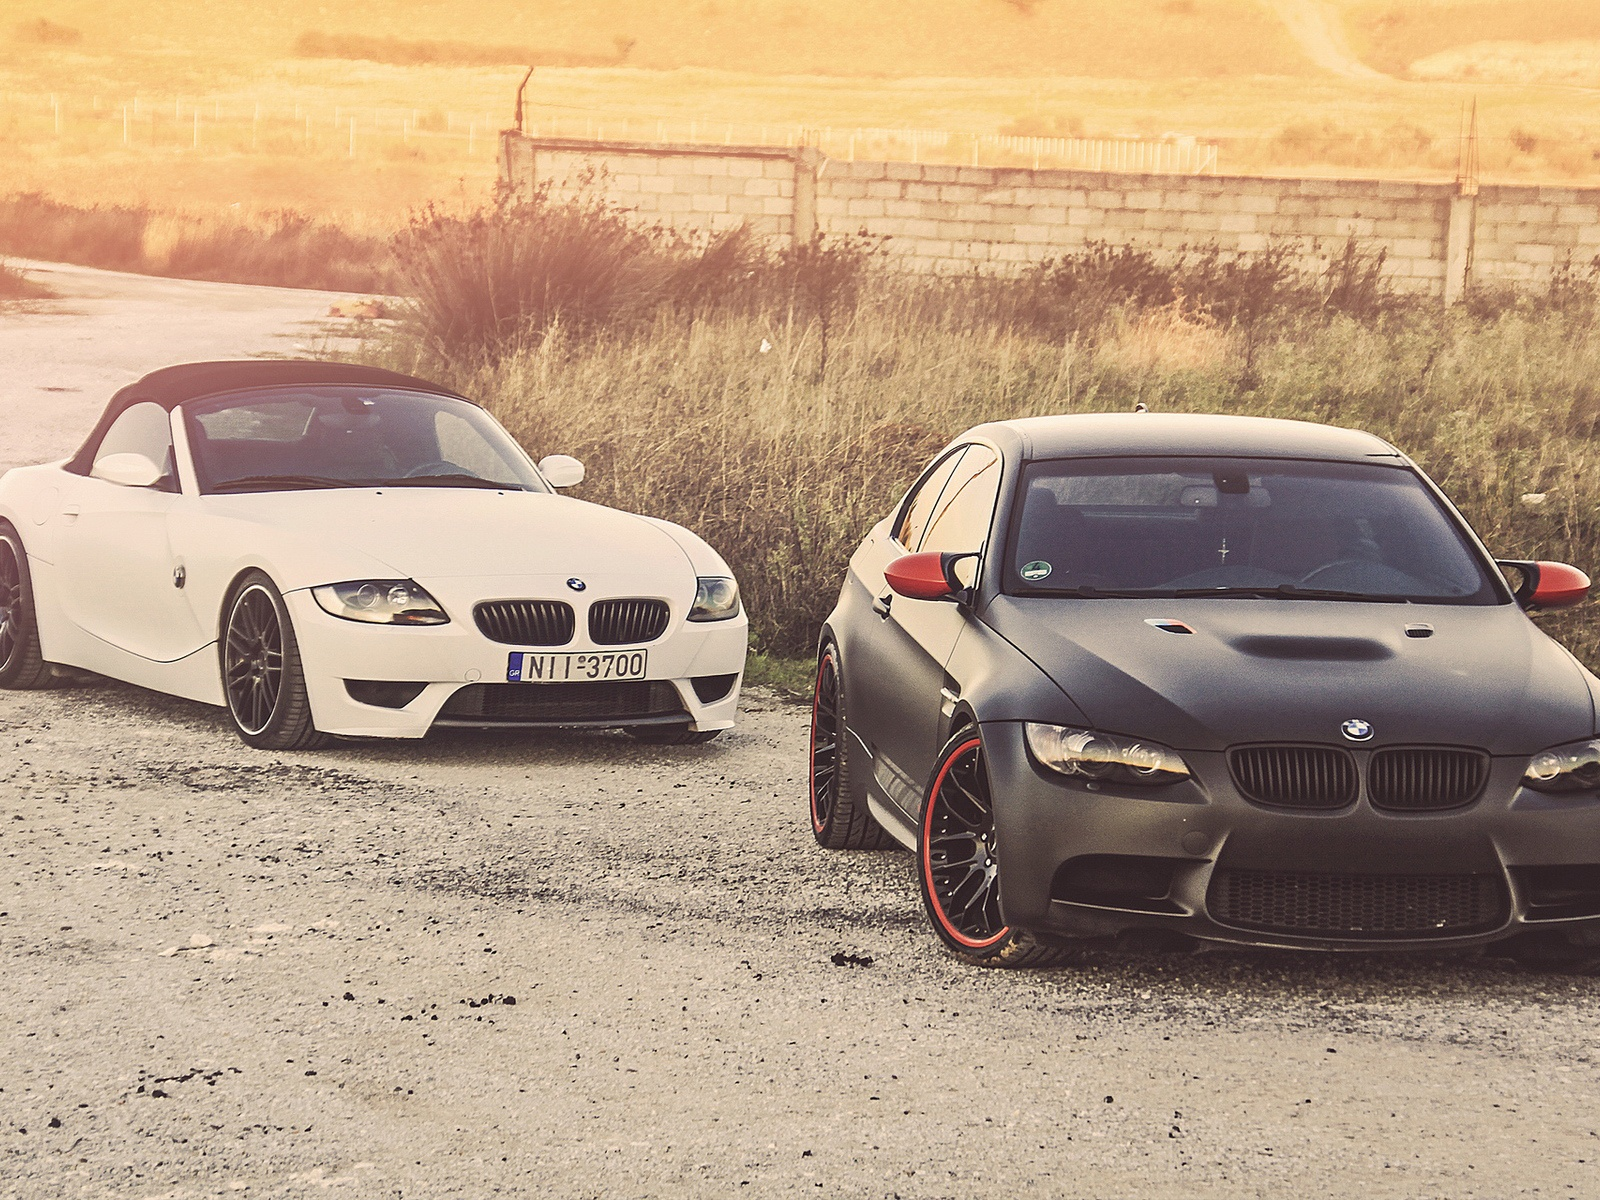 Bmw M3 Z4 White And Black Car Wallpaper 1600x1200